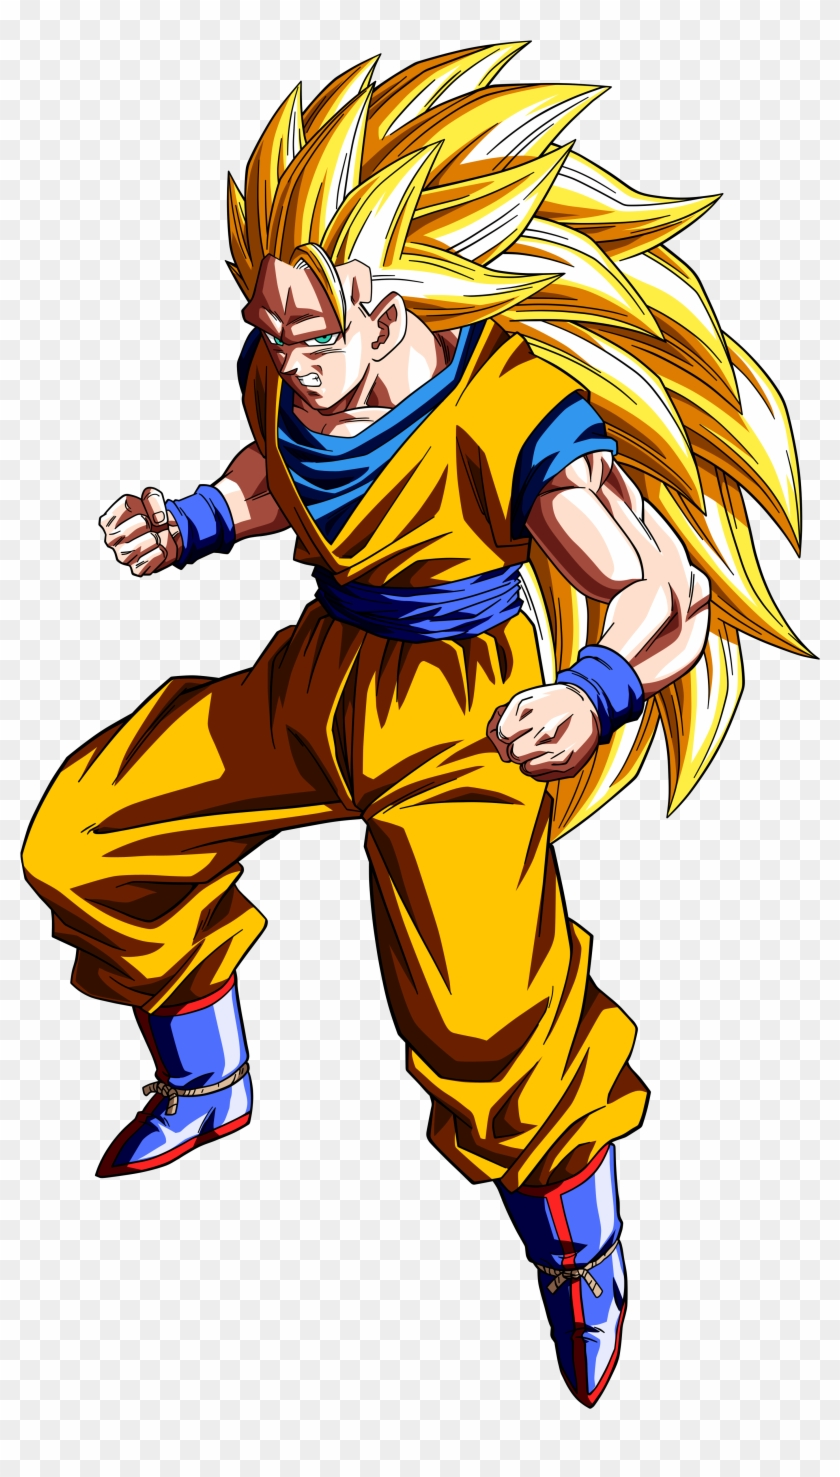 Dragon Ball Z Wall Decals High Def Images Dragon Ball Z Png Free Transparent Png Clipart Images Download